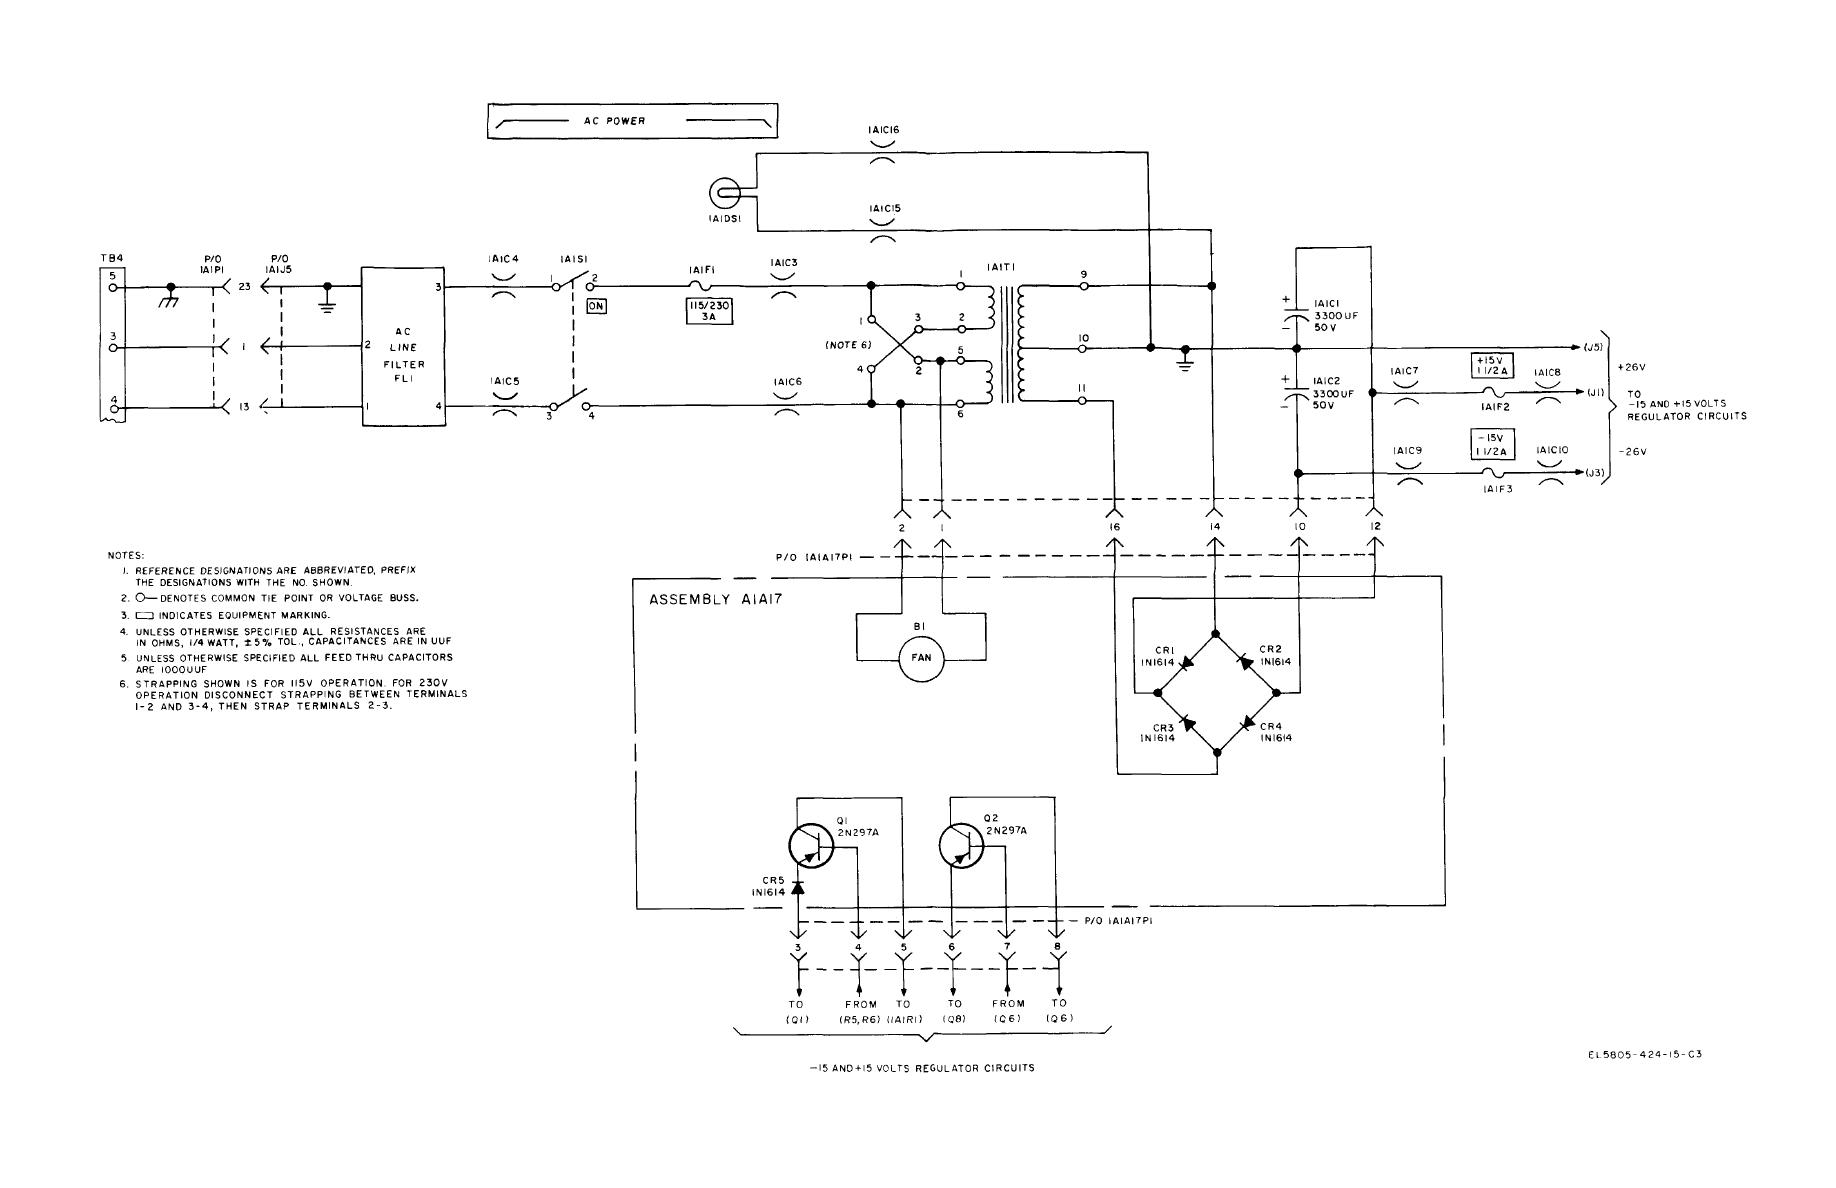 Modem Circuit Computer Circuits Parallax Converter Wiring Diagram Ac Power And Rectifier Chassis Supply